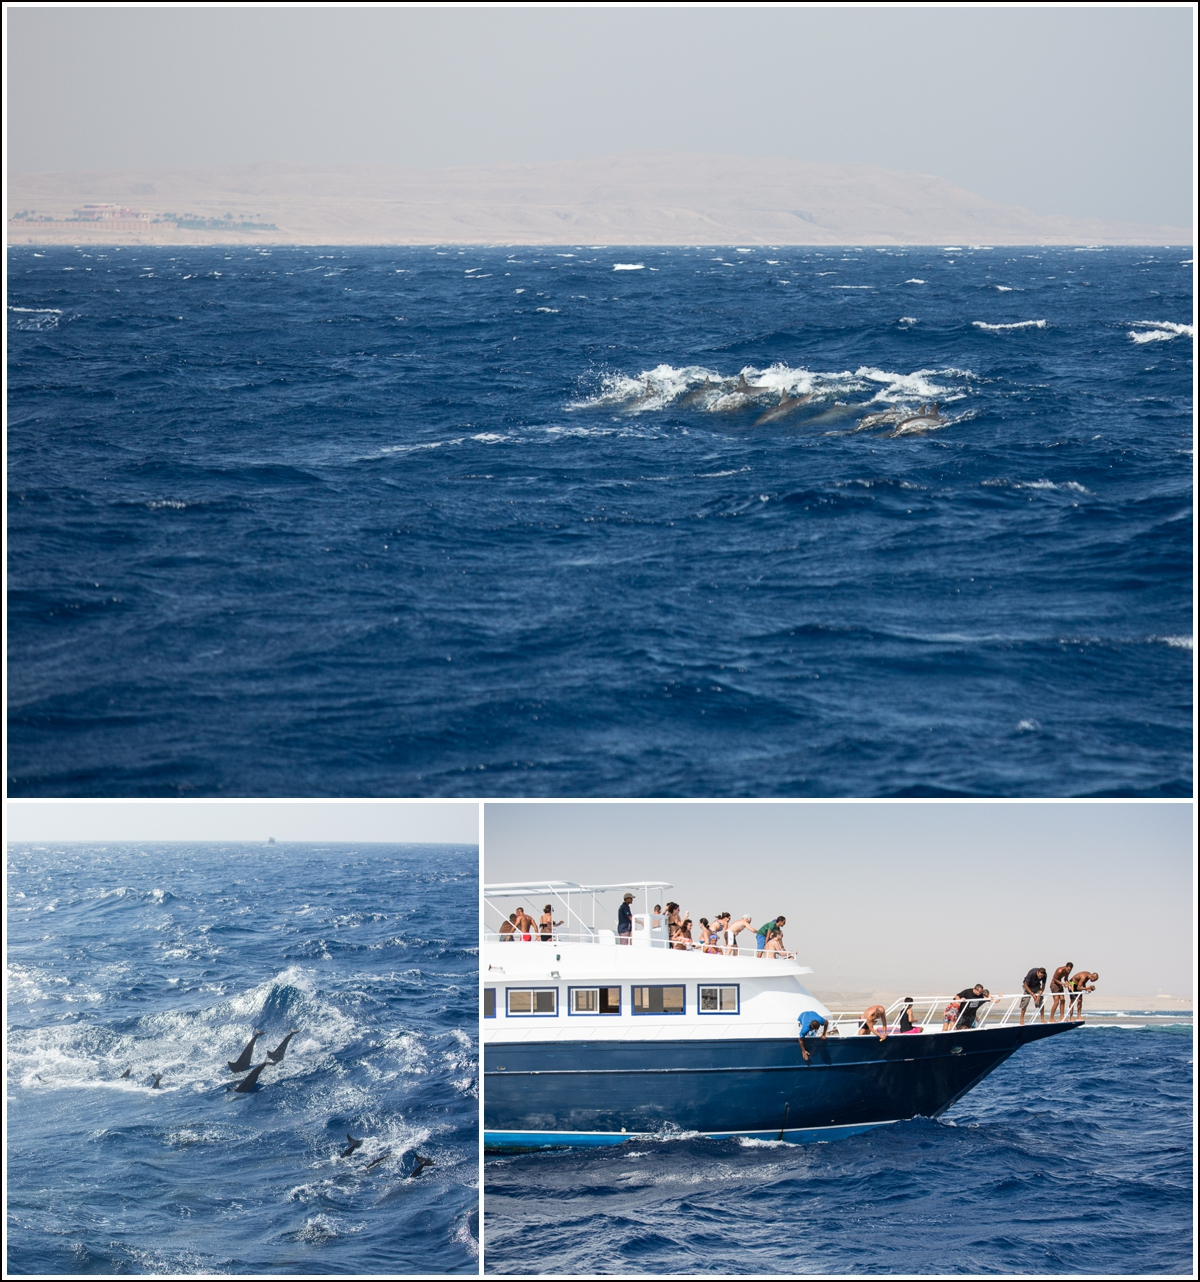 Red-Sea-Egypt-dykking-snorkling3